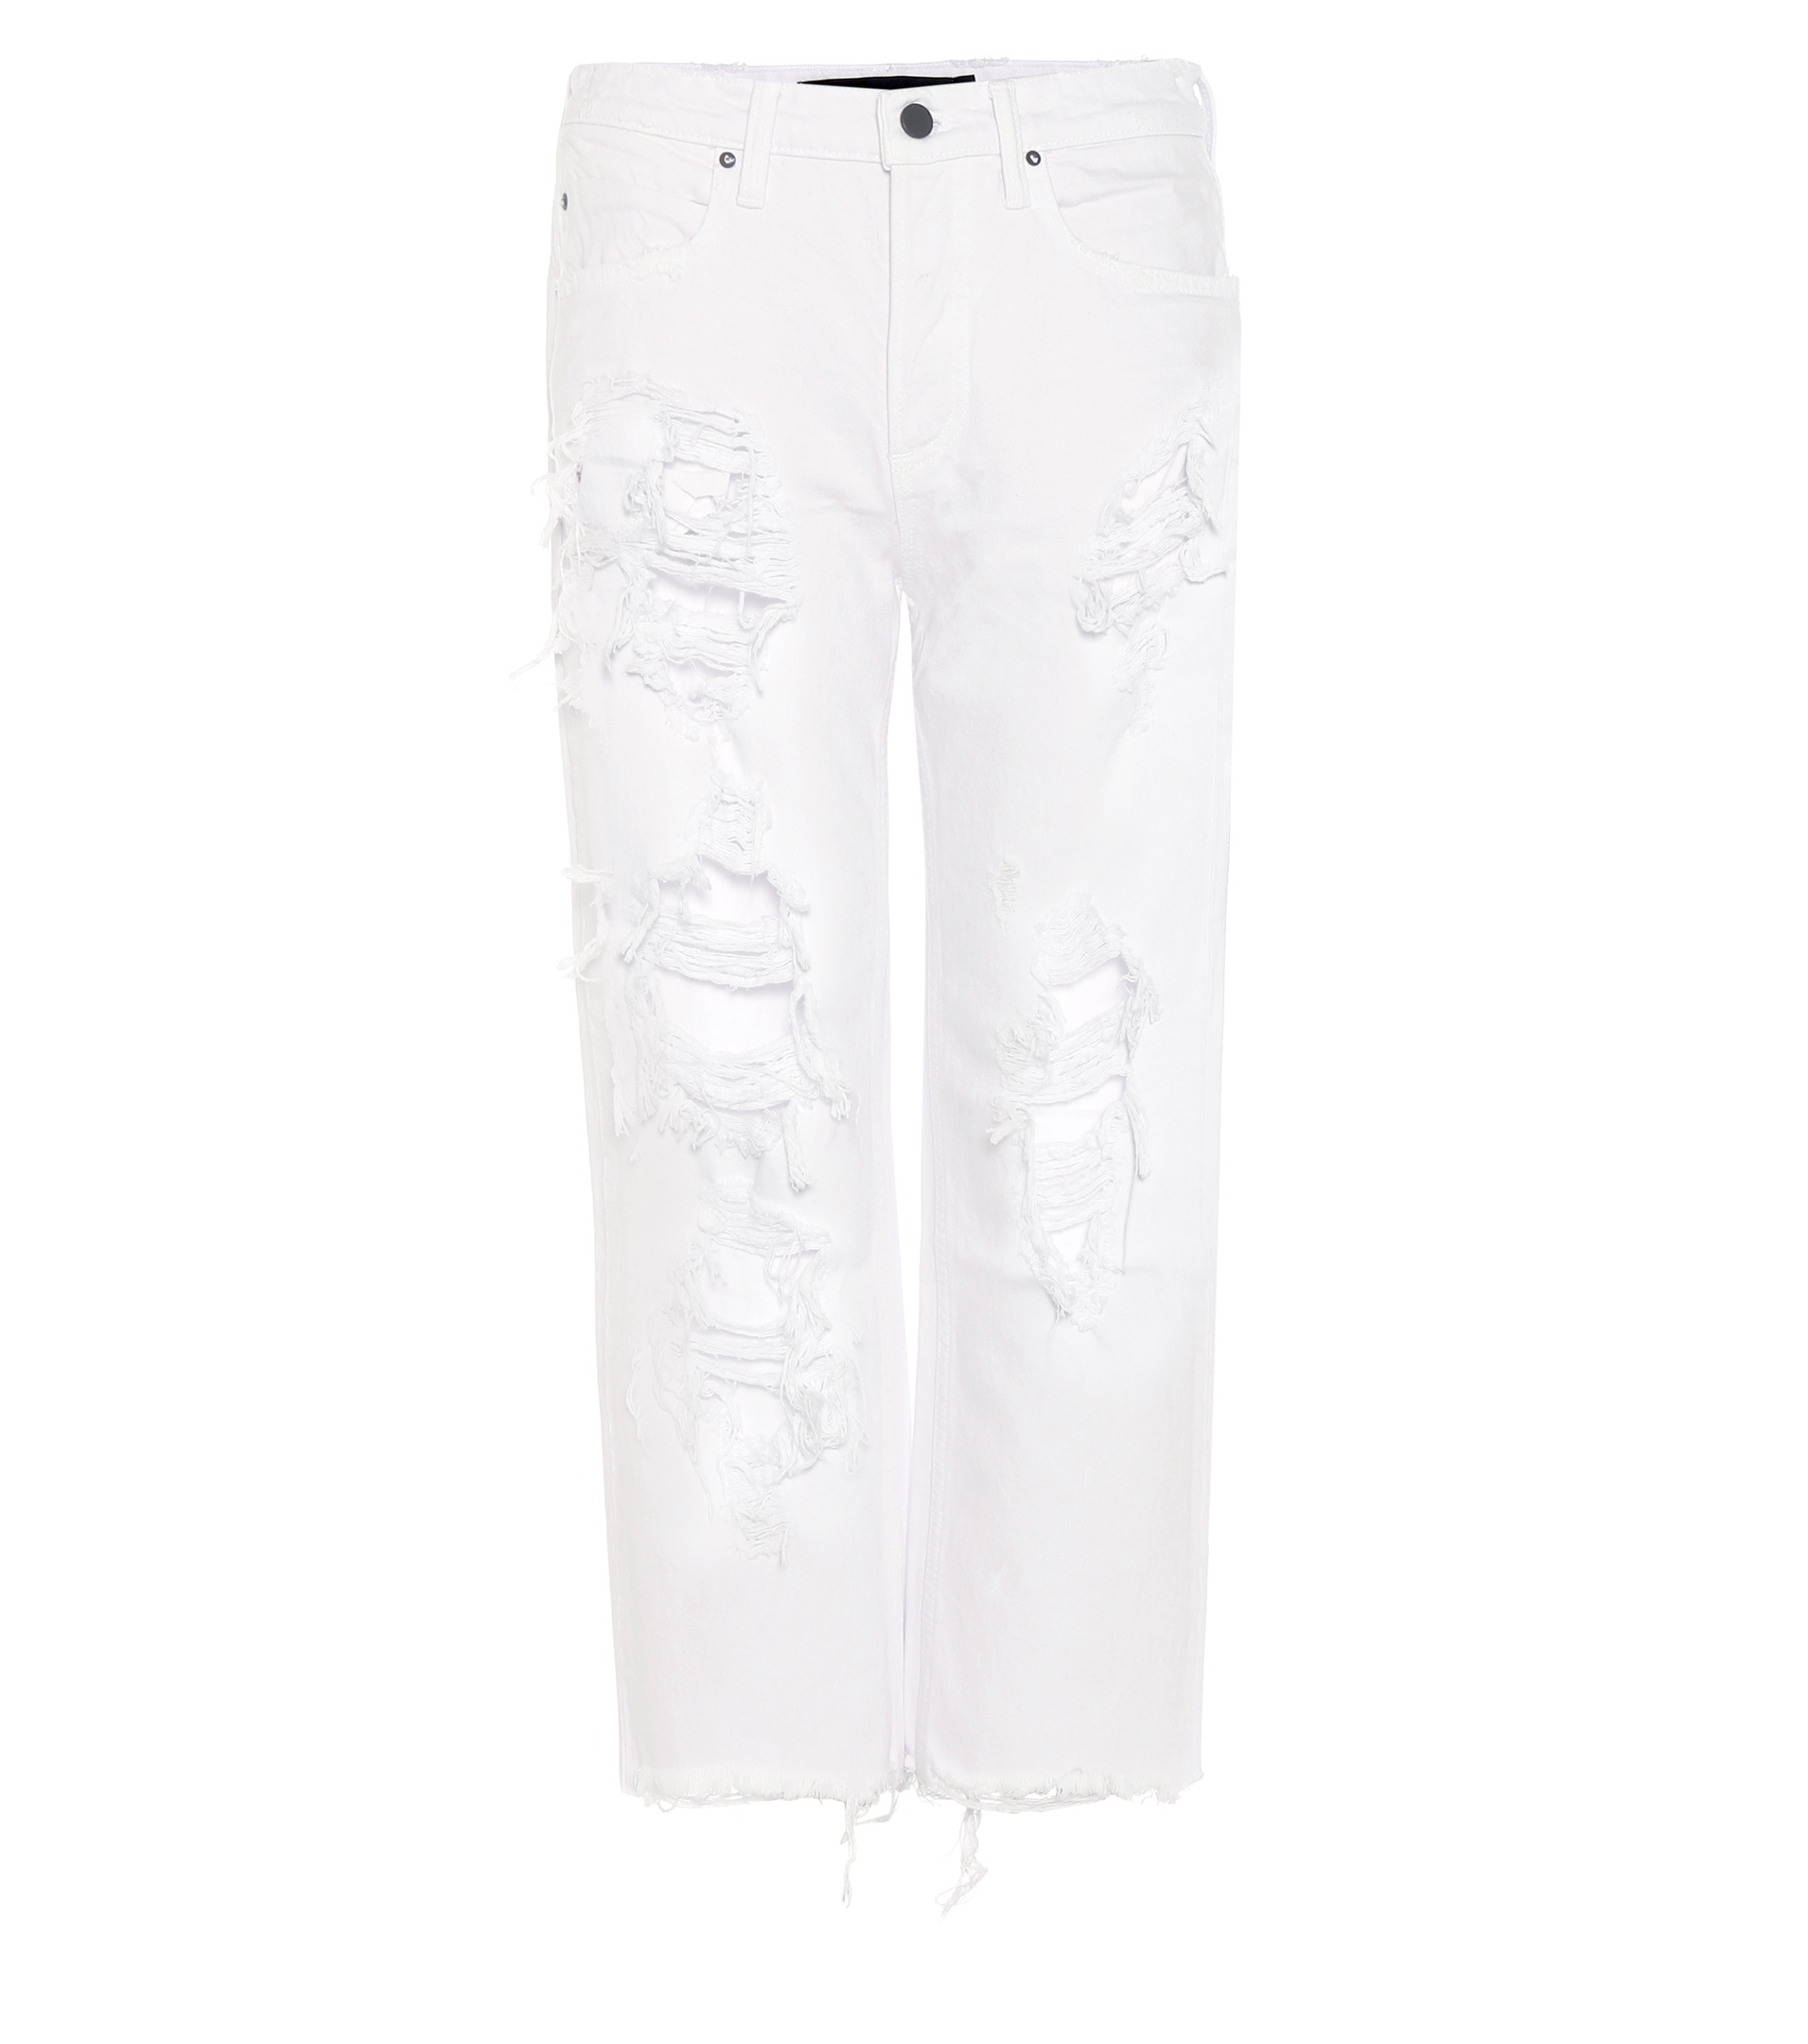 9b04612dc4e4 Lyst - Alexander Wang Wisteria Distressed Jeans in White